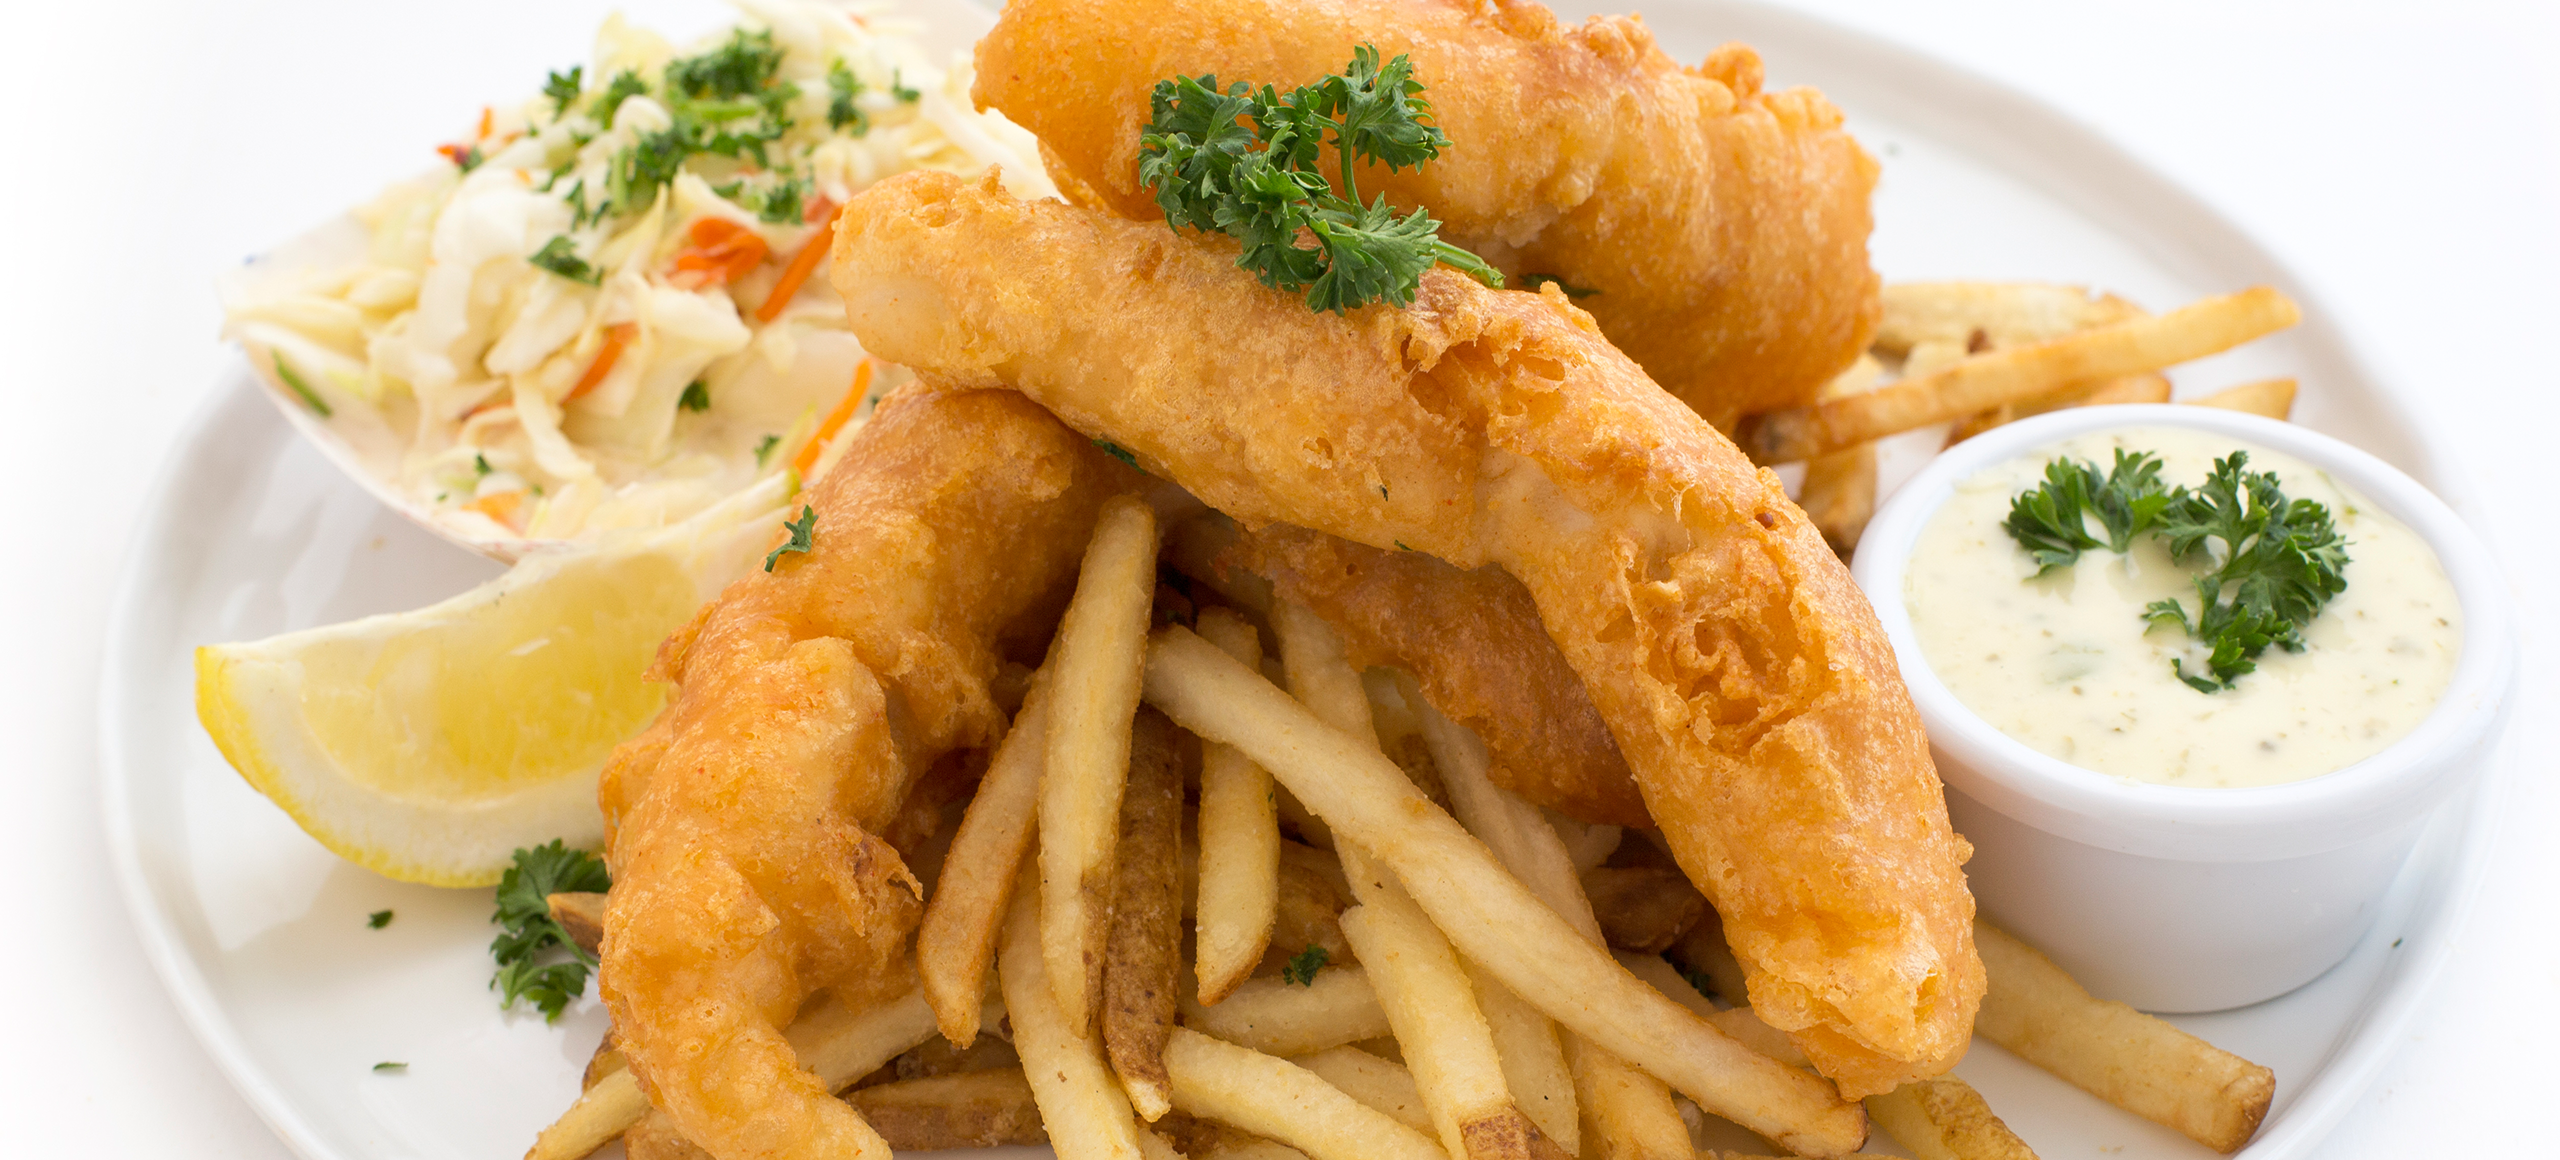 3 Piece Fish u0026 Chips - Fish And Chips PNG HD